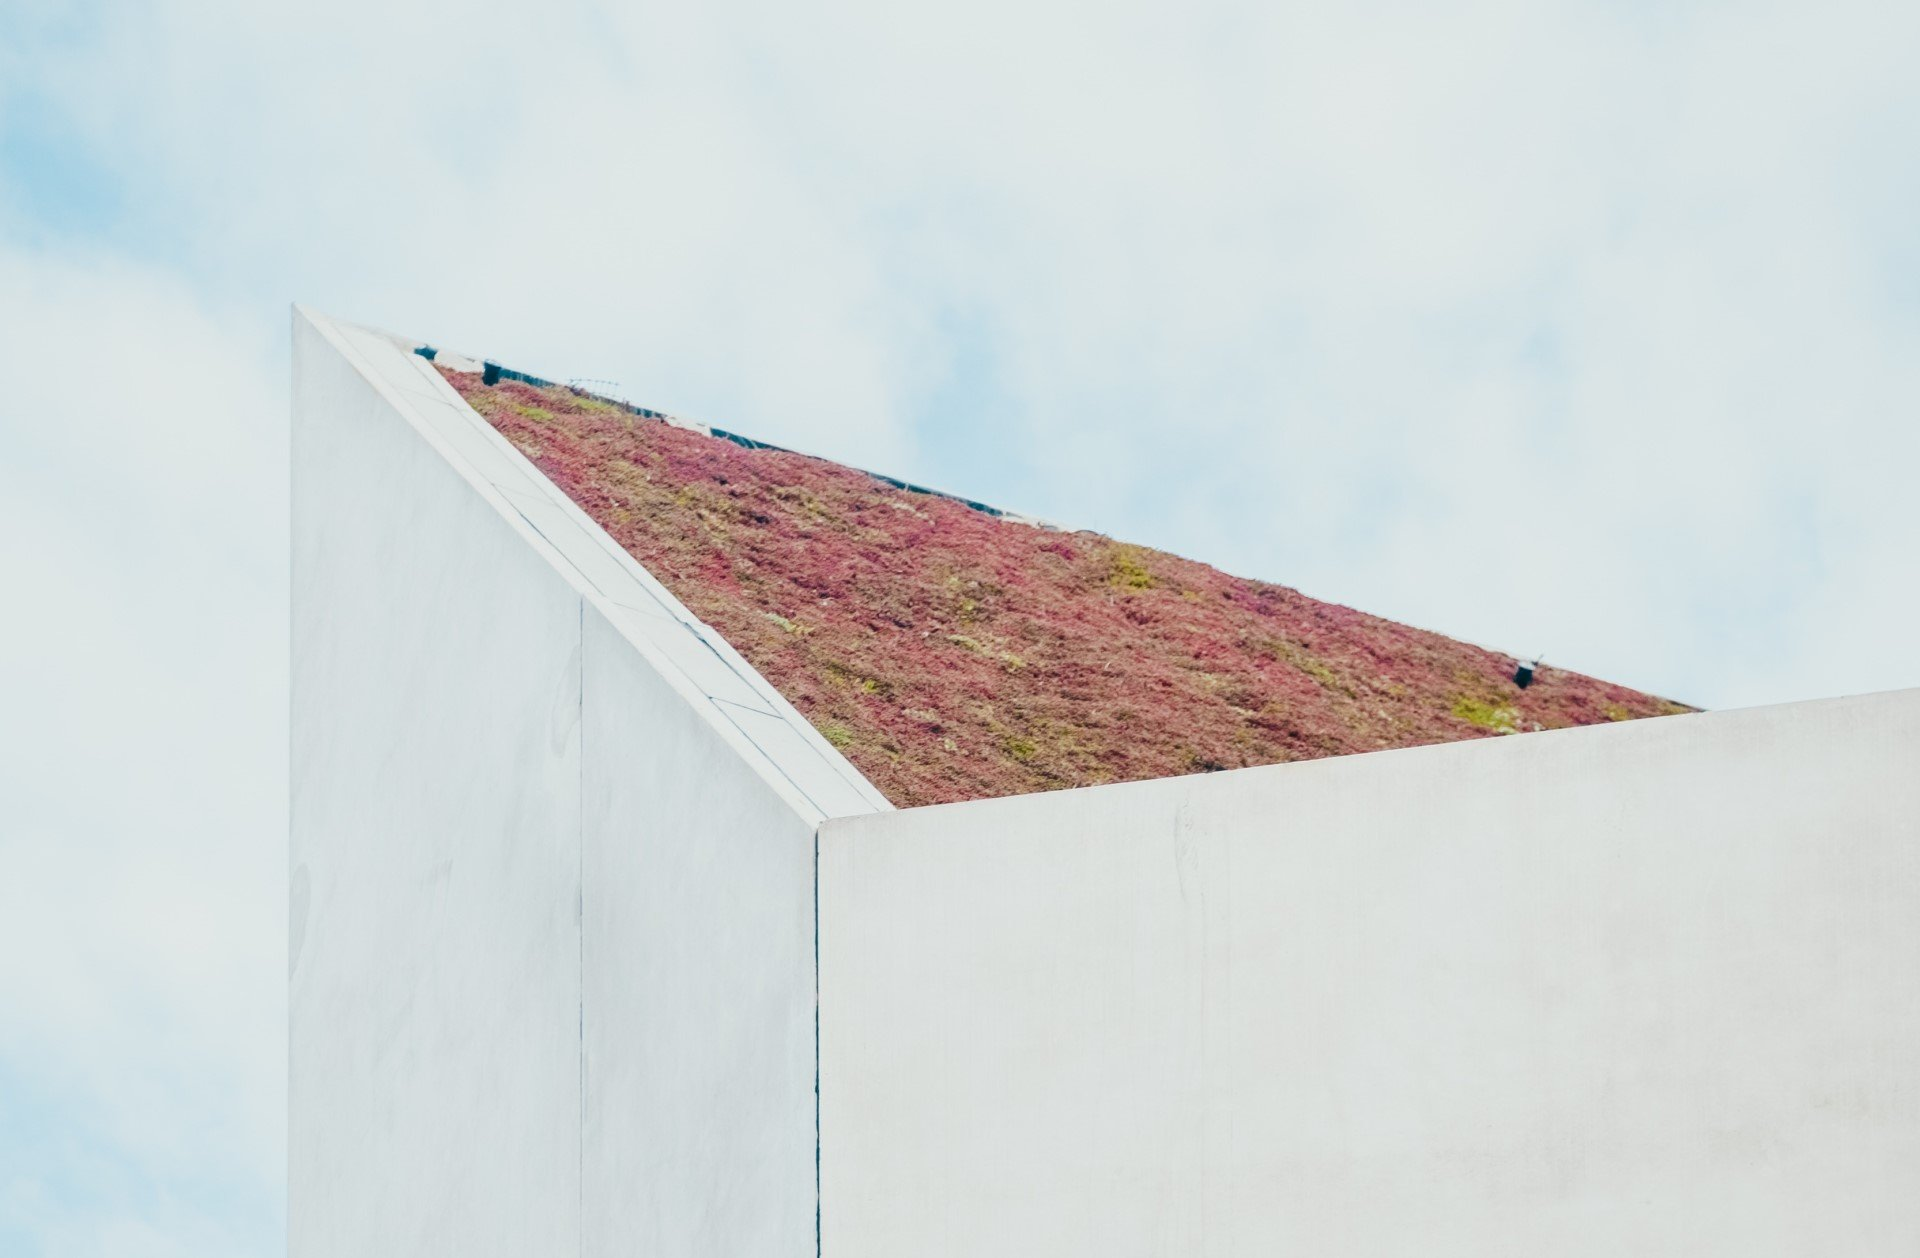 3 Financial Benefits of Maintaining a Green Roof | If you fail to maintain your green roof, you can't hope to reap the promised financial benefits.